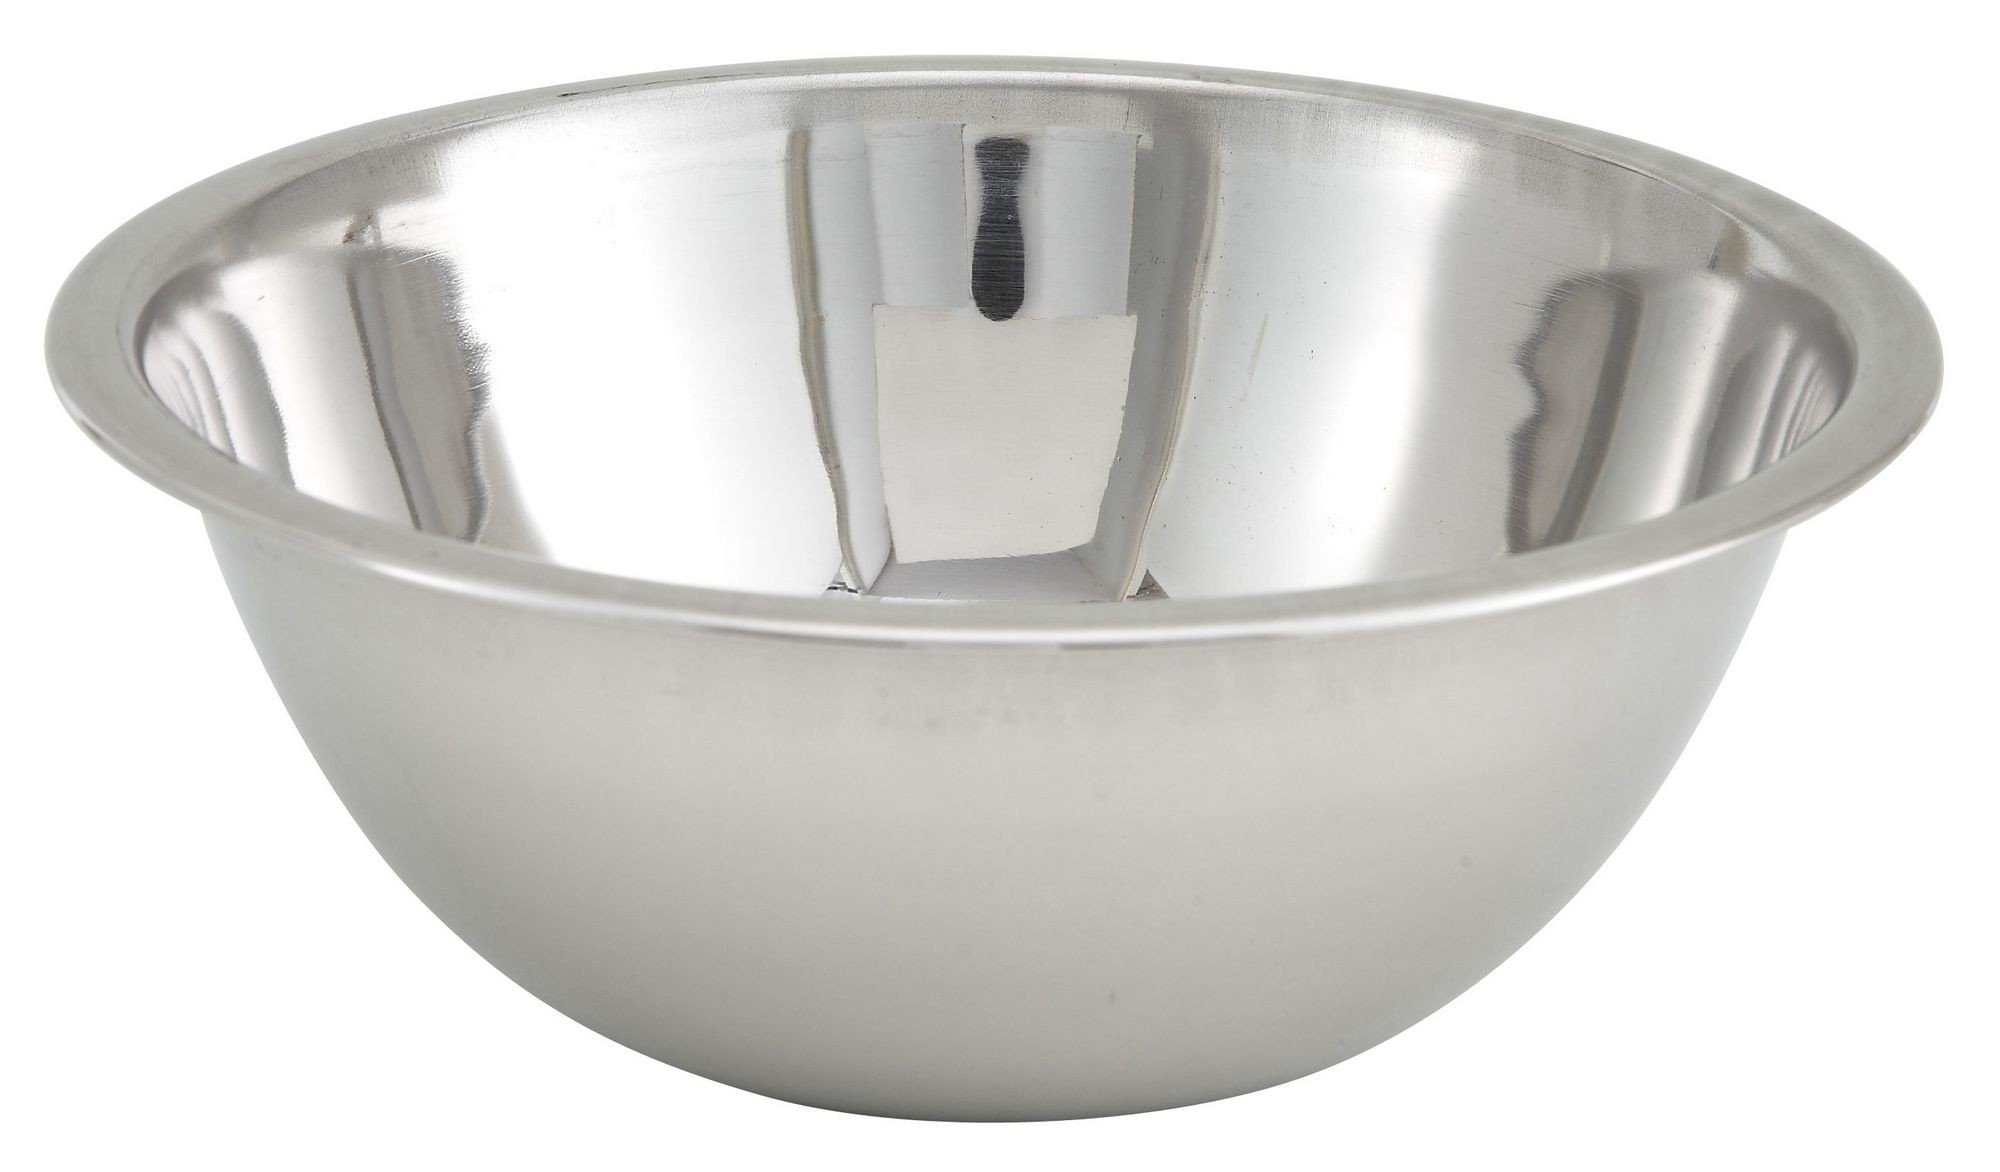 Winco MXBT-300Q Stainless Steel All-Purpose Mixing Bowl 3 Qt.